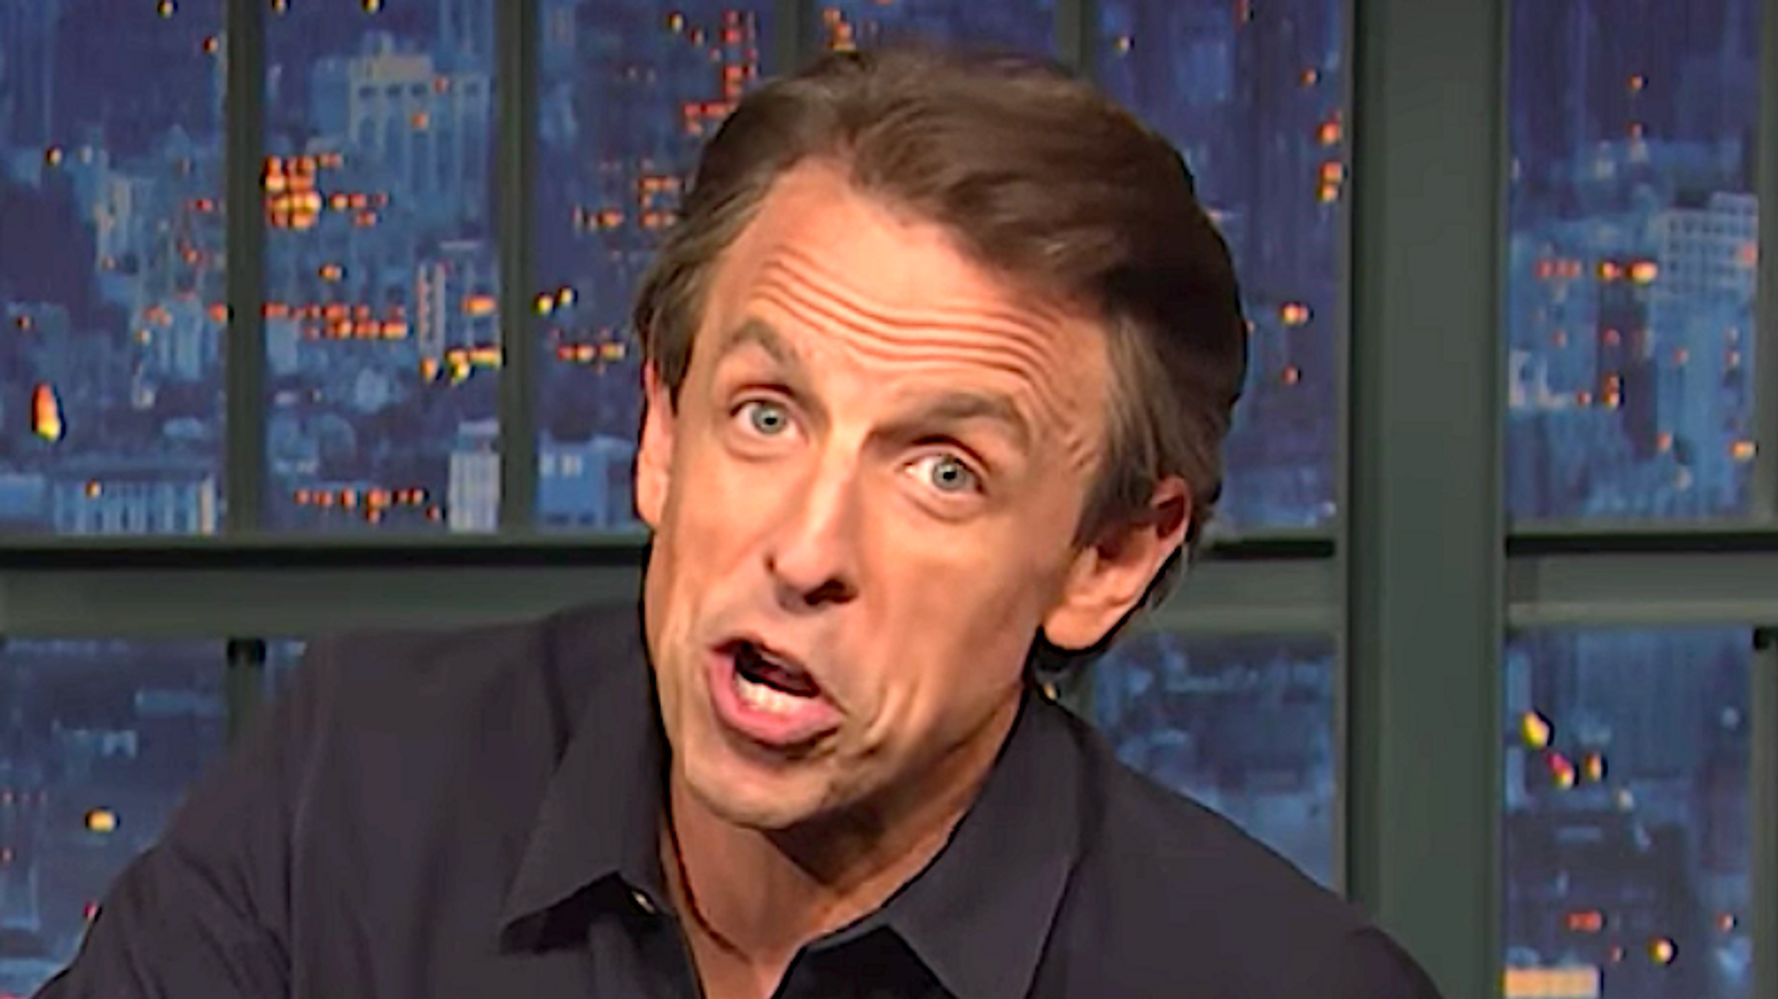 Seth Meyers Explains How Donald Trump's Election Denial Scams His Base For Cash